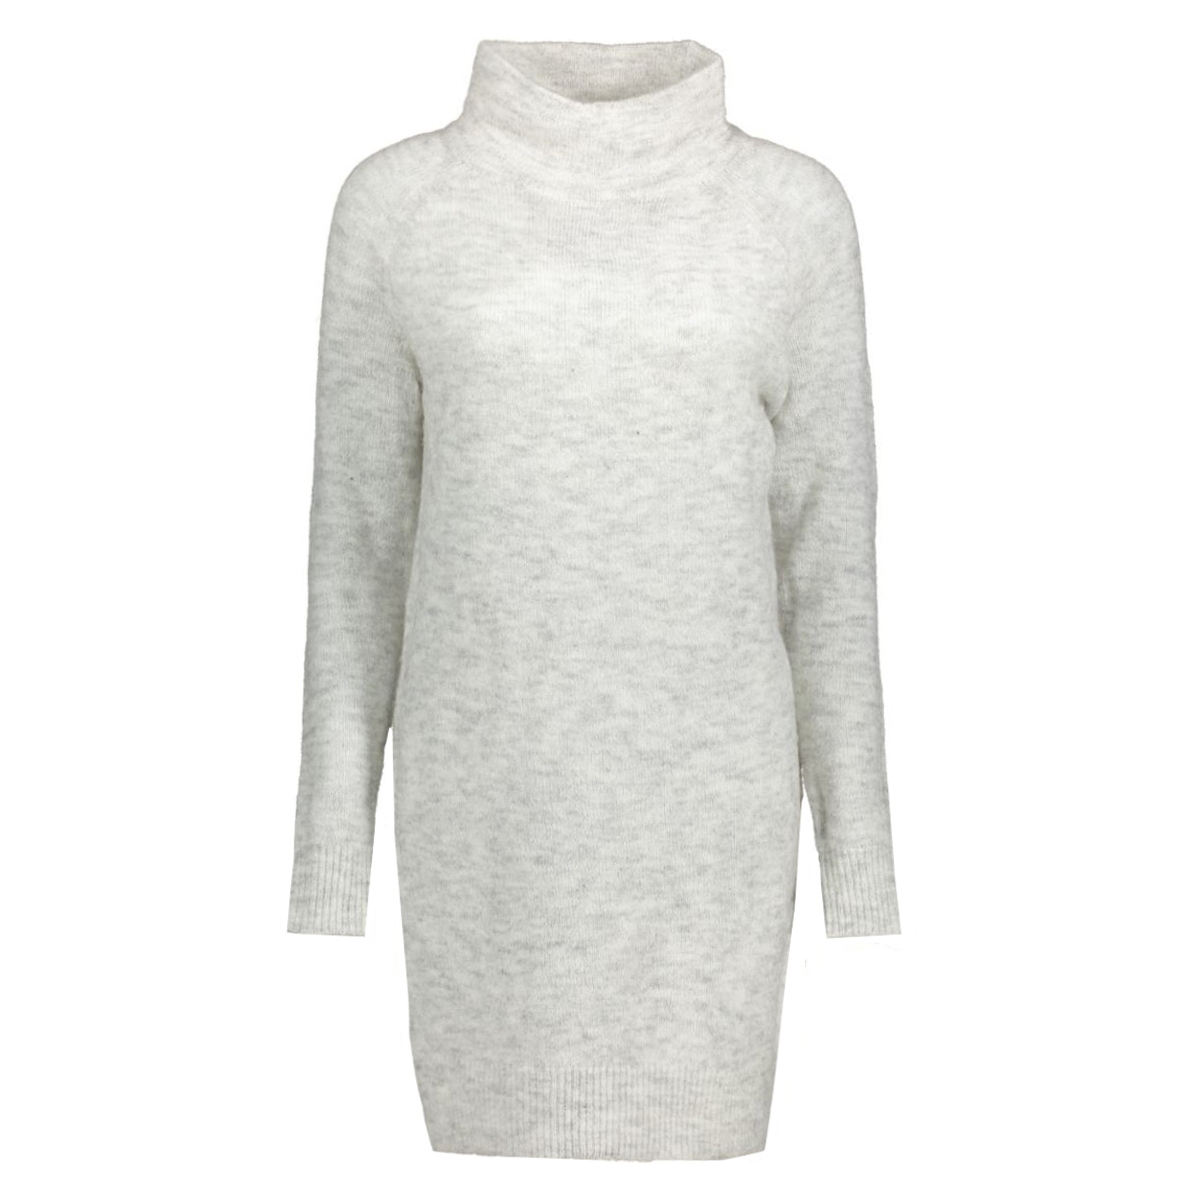 onltrust l/s highneck dress knt rp 15116634 only jurk white/melange